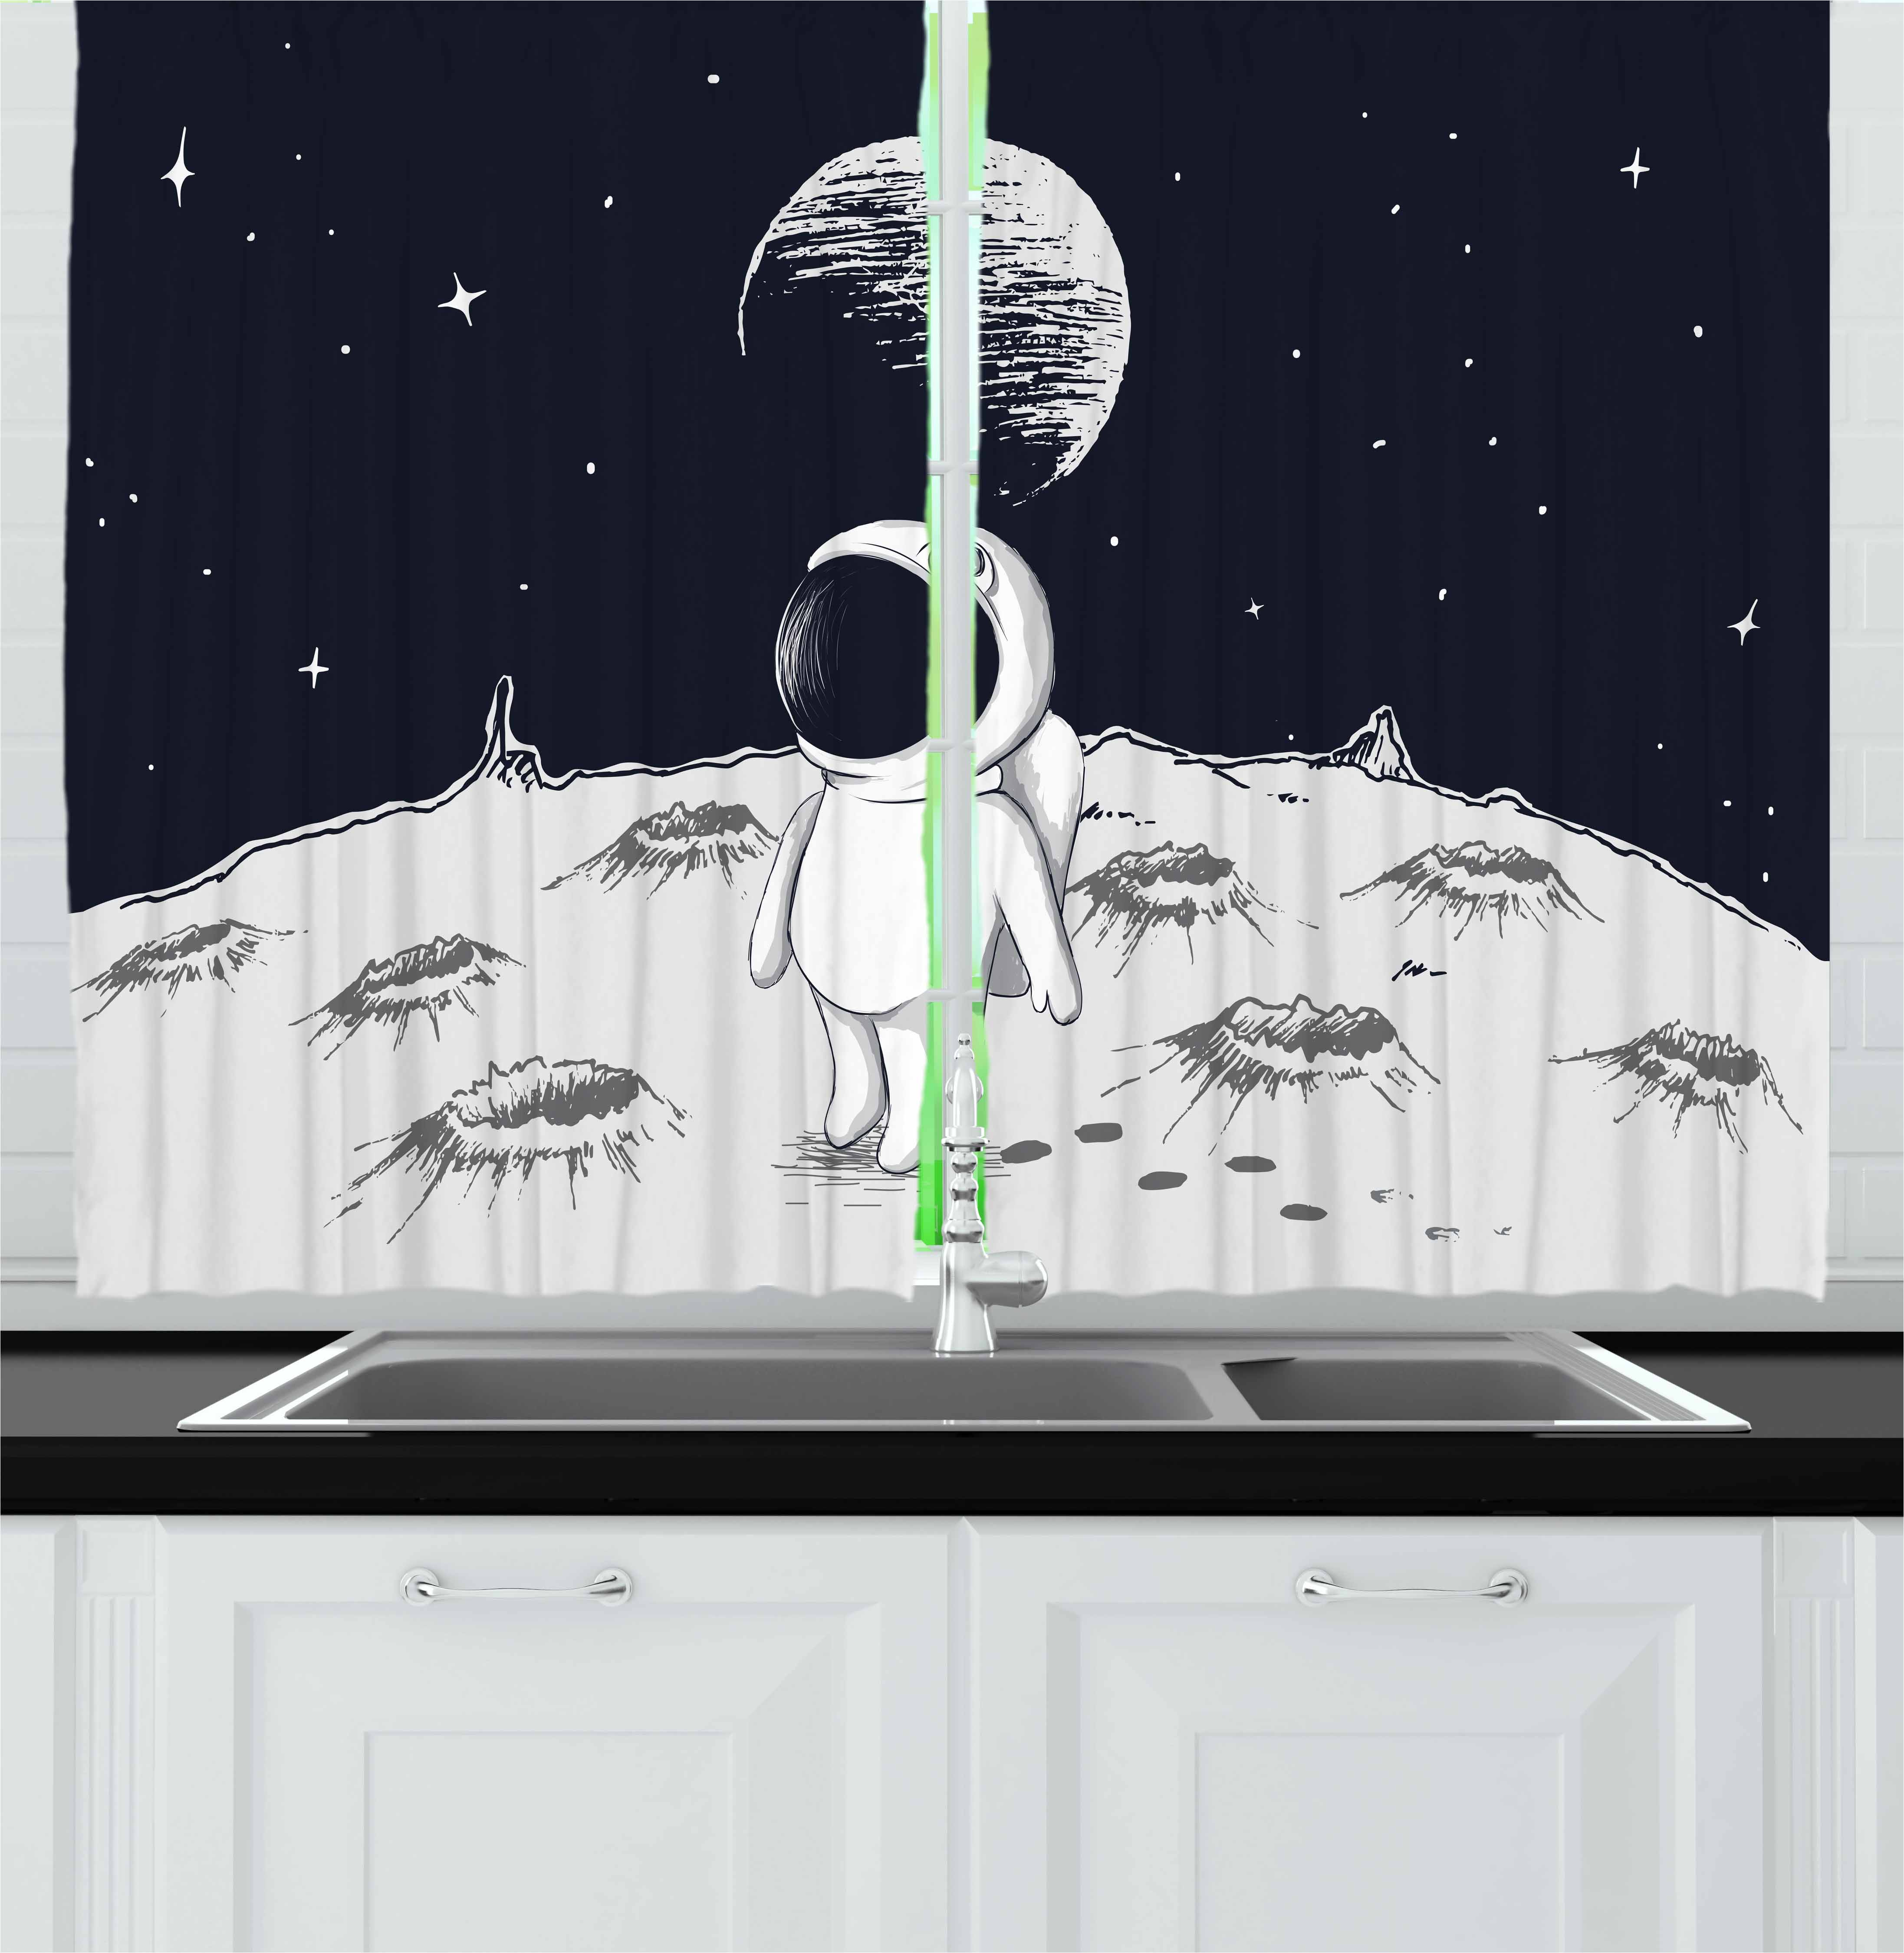 Astronaut Curtains 2 Panels Set, Cute Astronaut Walking on the Moon Space Stars Children Cartoon Hand Drawn Art, Window Drapes for Living Room Bedroom, 55W X 39L Inches, Black White, by Ambesonne